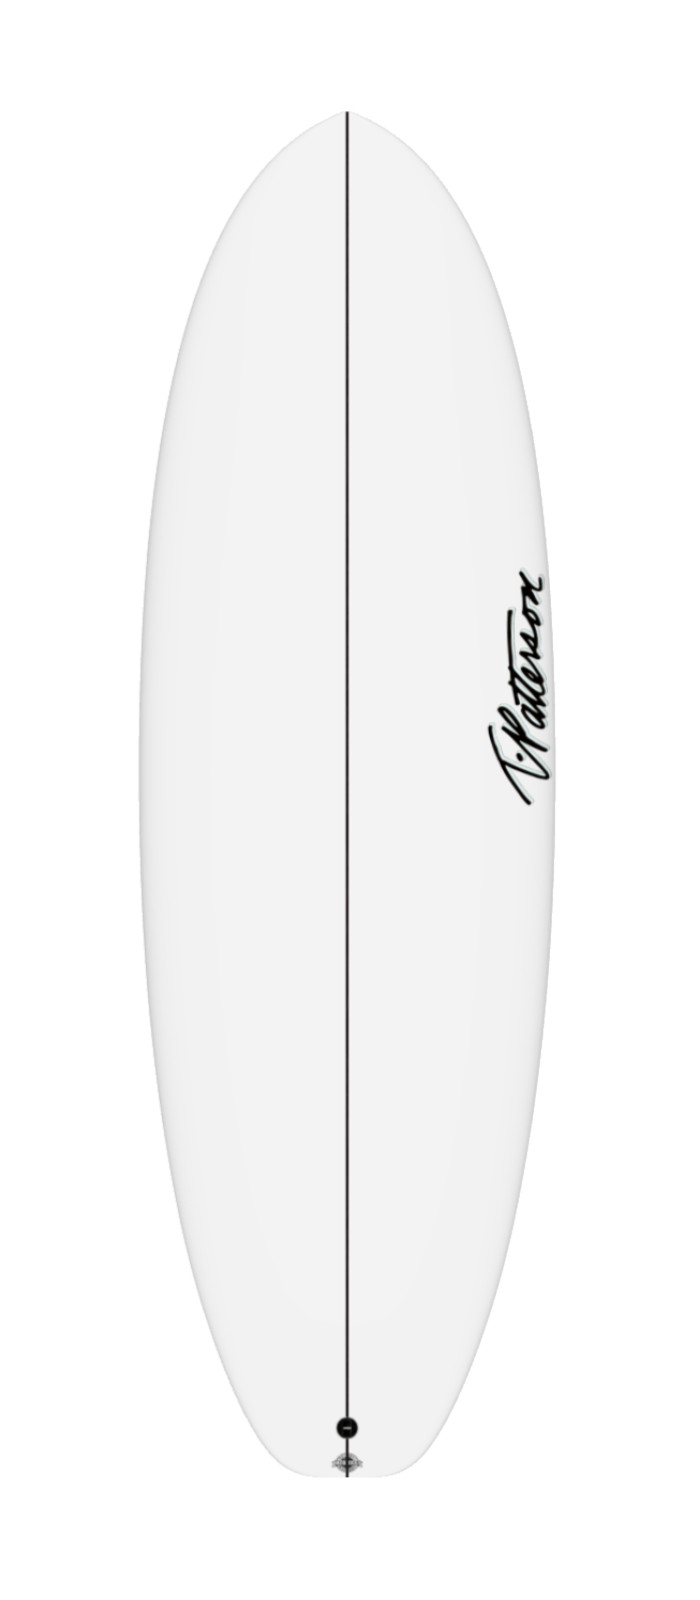 THE PILL TWO surfboard model